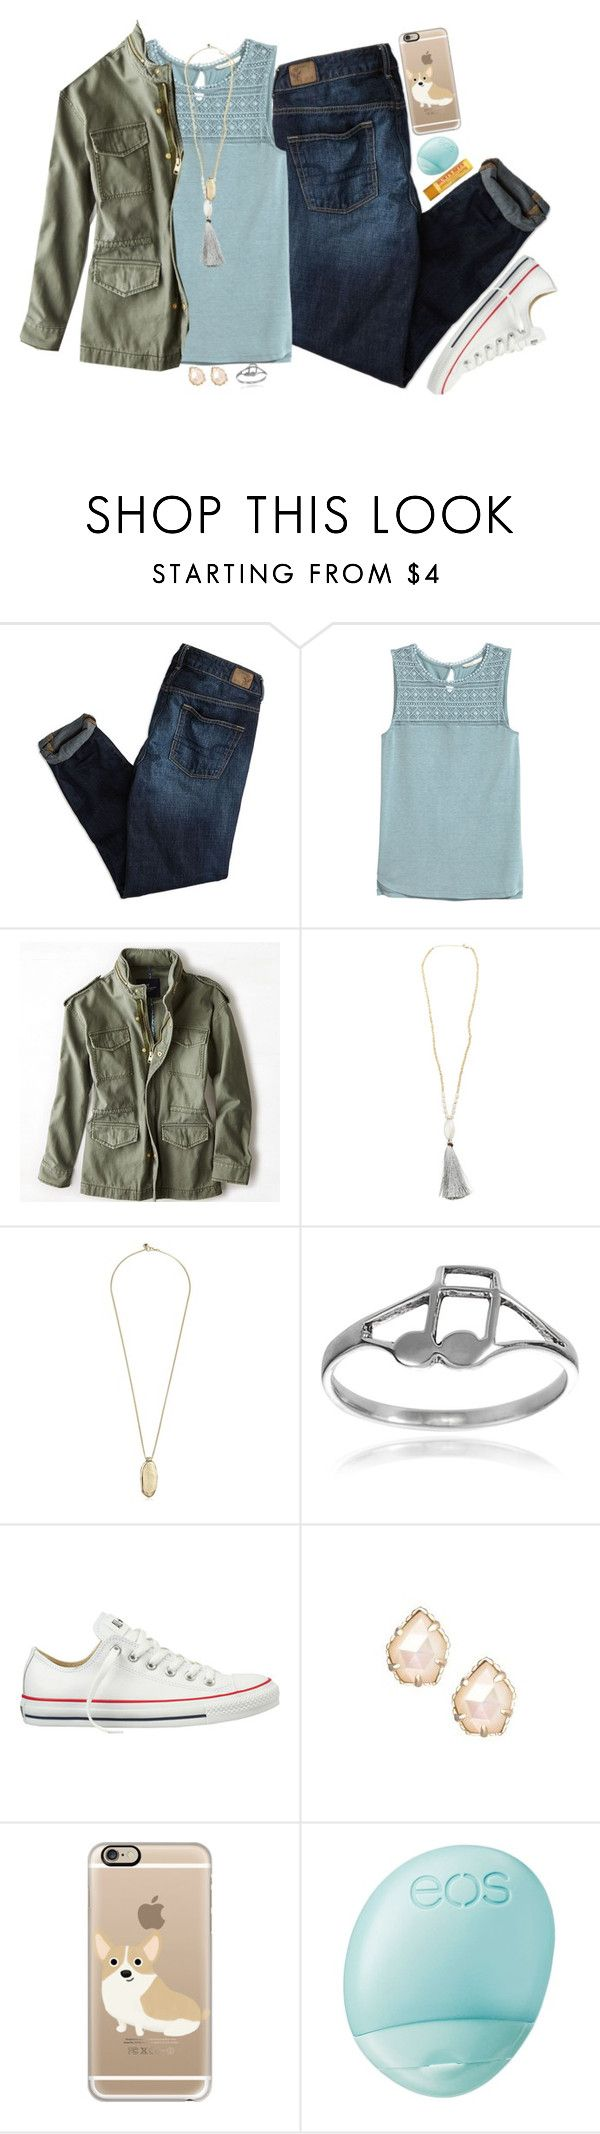 """""""High School ... Gotta Love It ... Or Nah"""" by madfashionaddict ❤ liked on Polyvore featuring American Eagle Outfitters, H&M, Sam Edelman, Journee Collection, Converse, Kendra Scott, Casetify, Eos and Burt's Bees"""